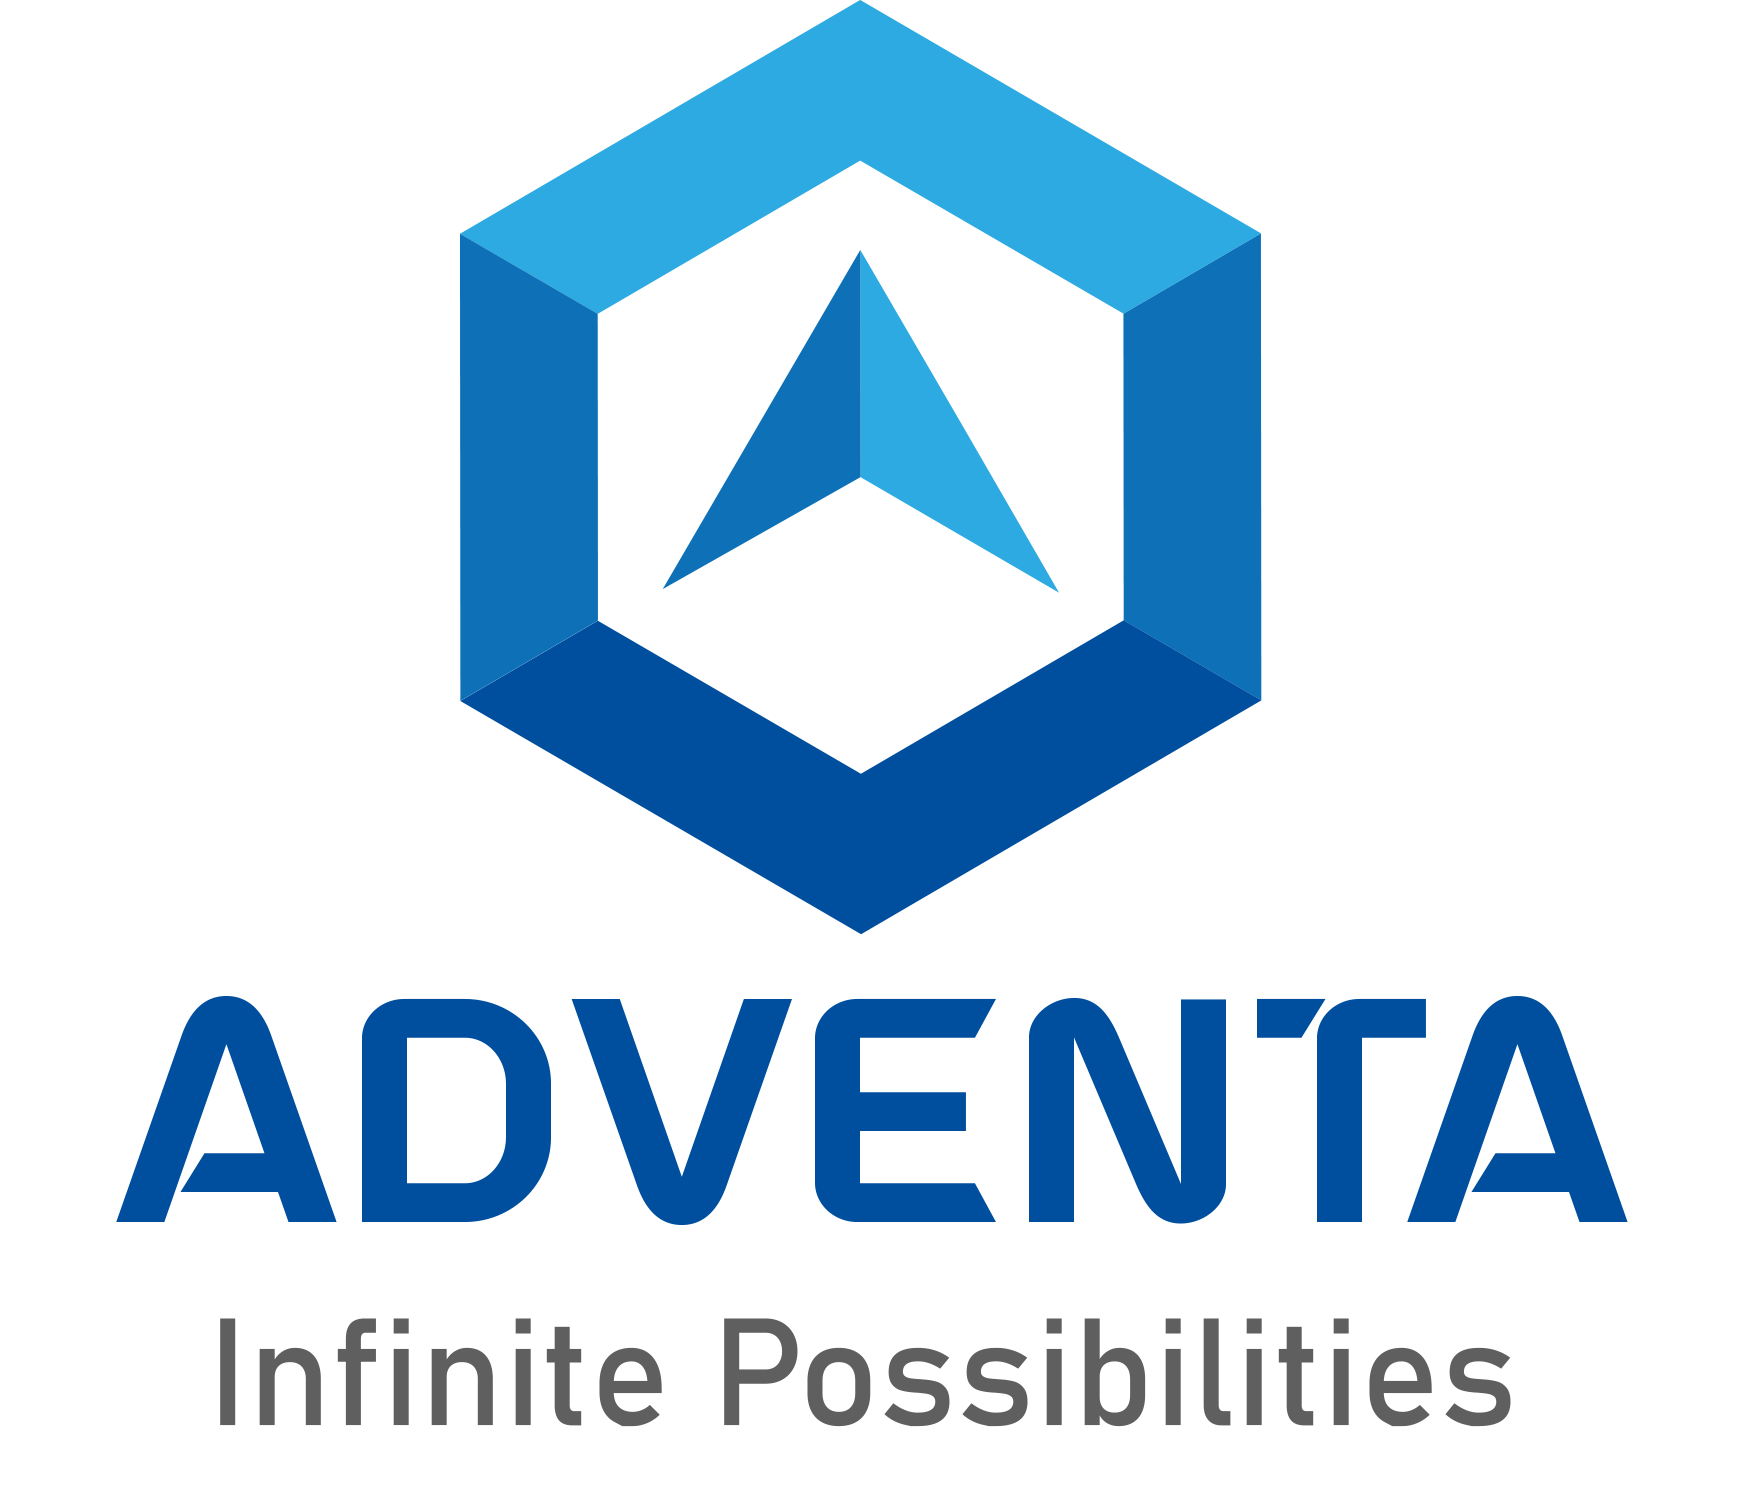 Adventa Holdings (Pvt) Limited